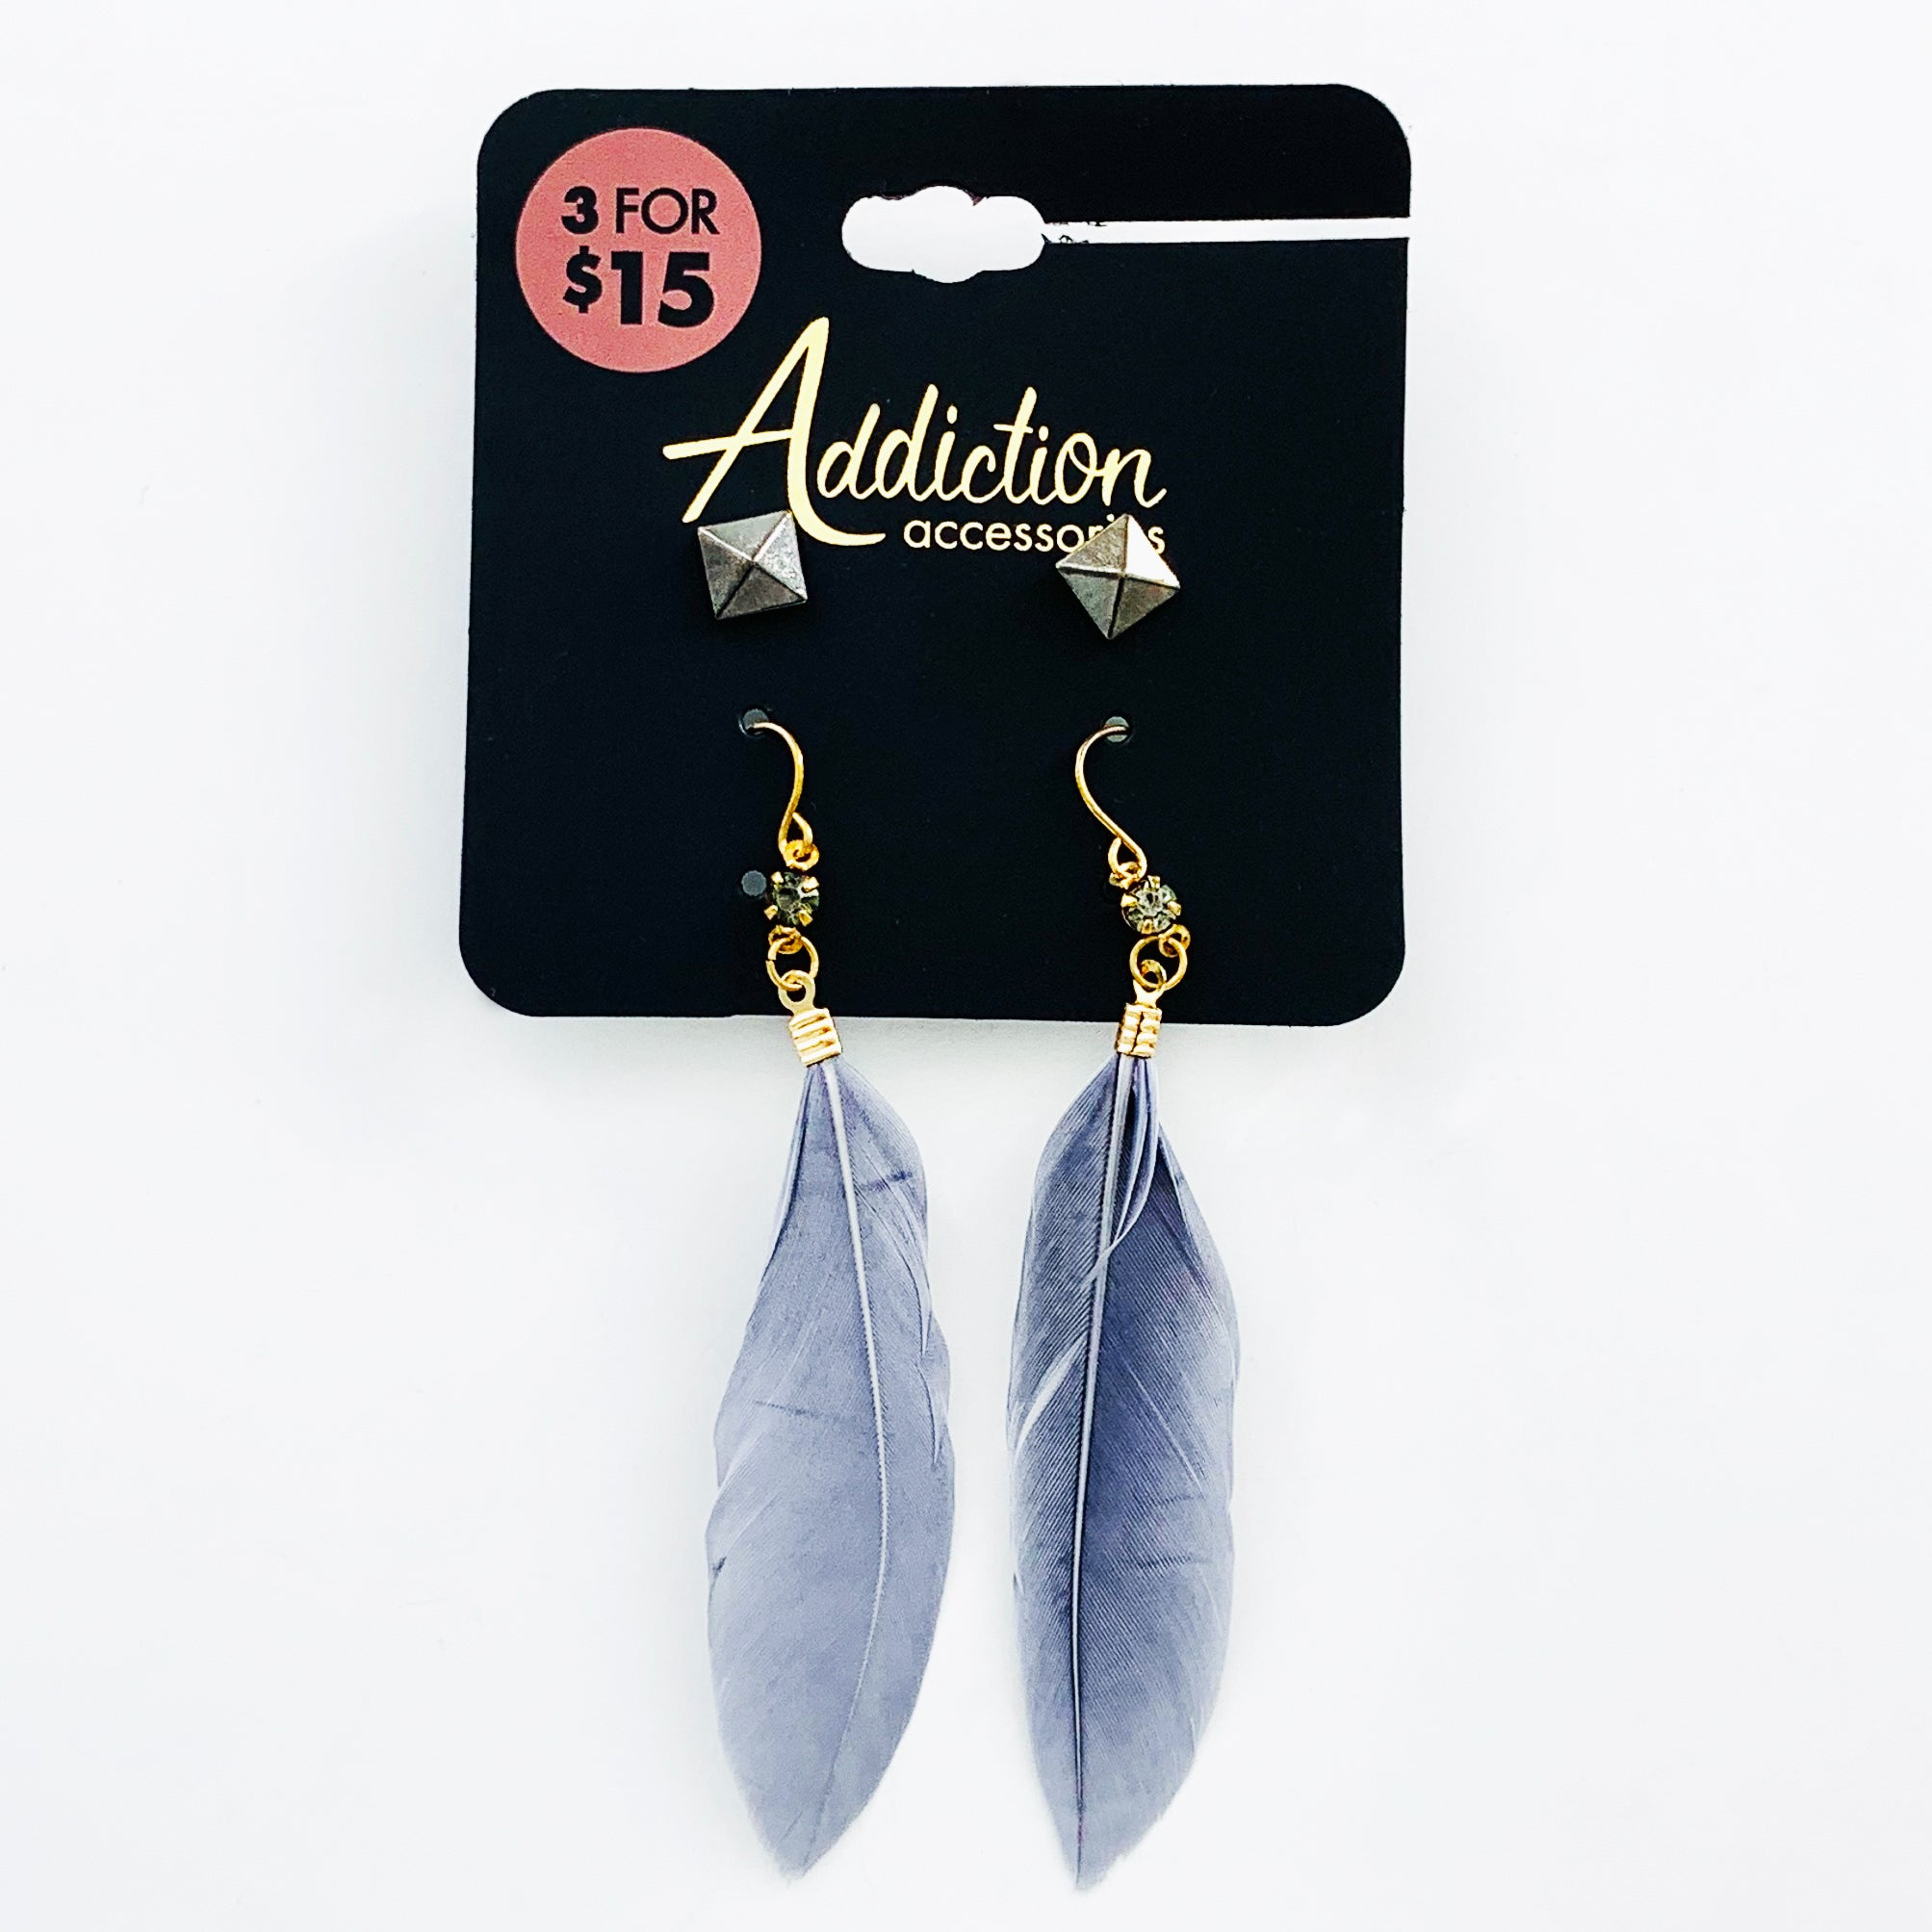 Dangling earrings with grey feathers